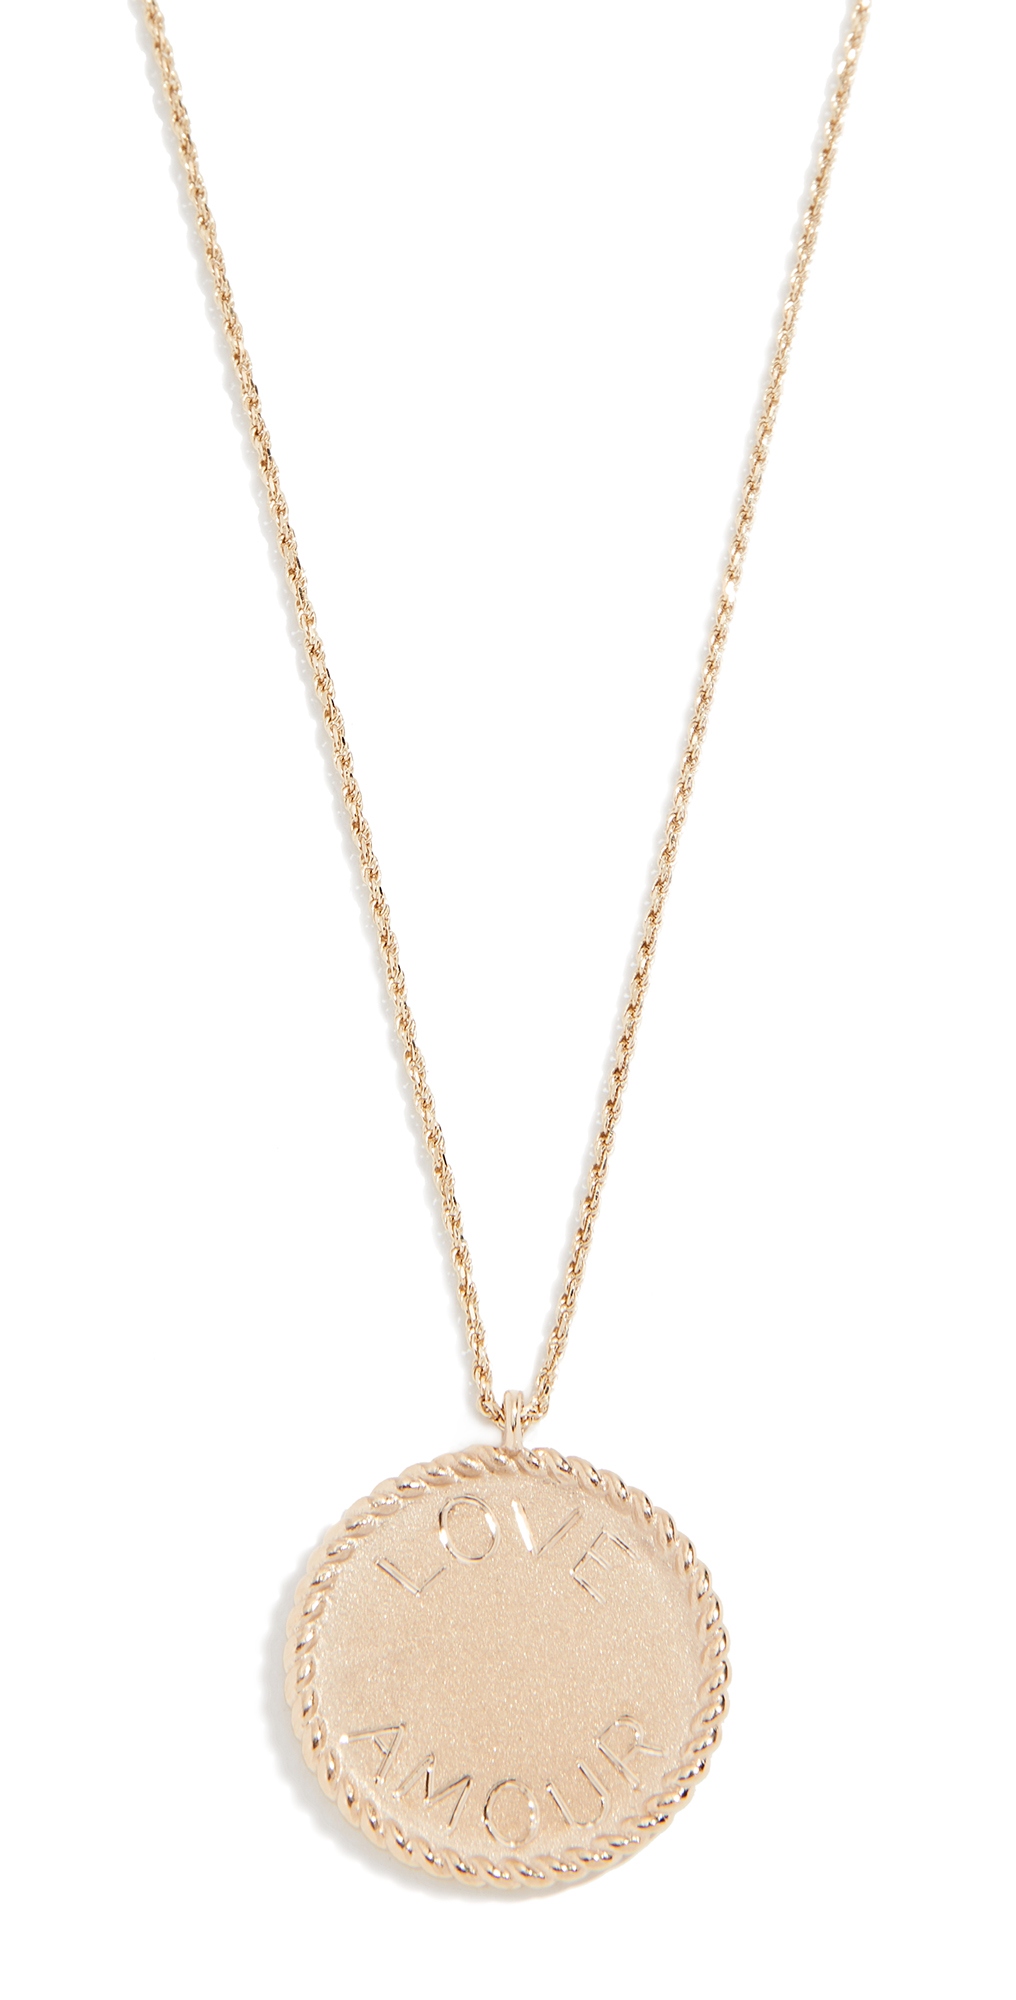 Ariel Gordon Jewelry 14k Imperial Disc Love Amour Necklace